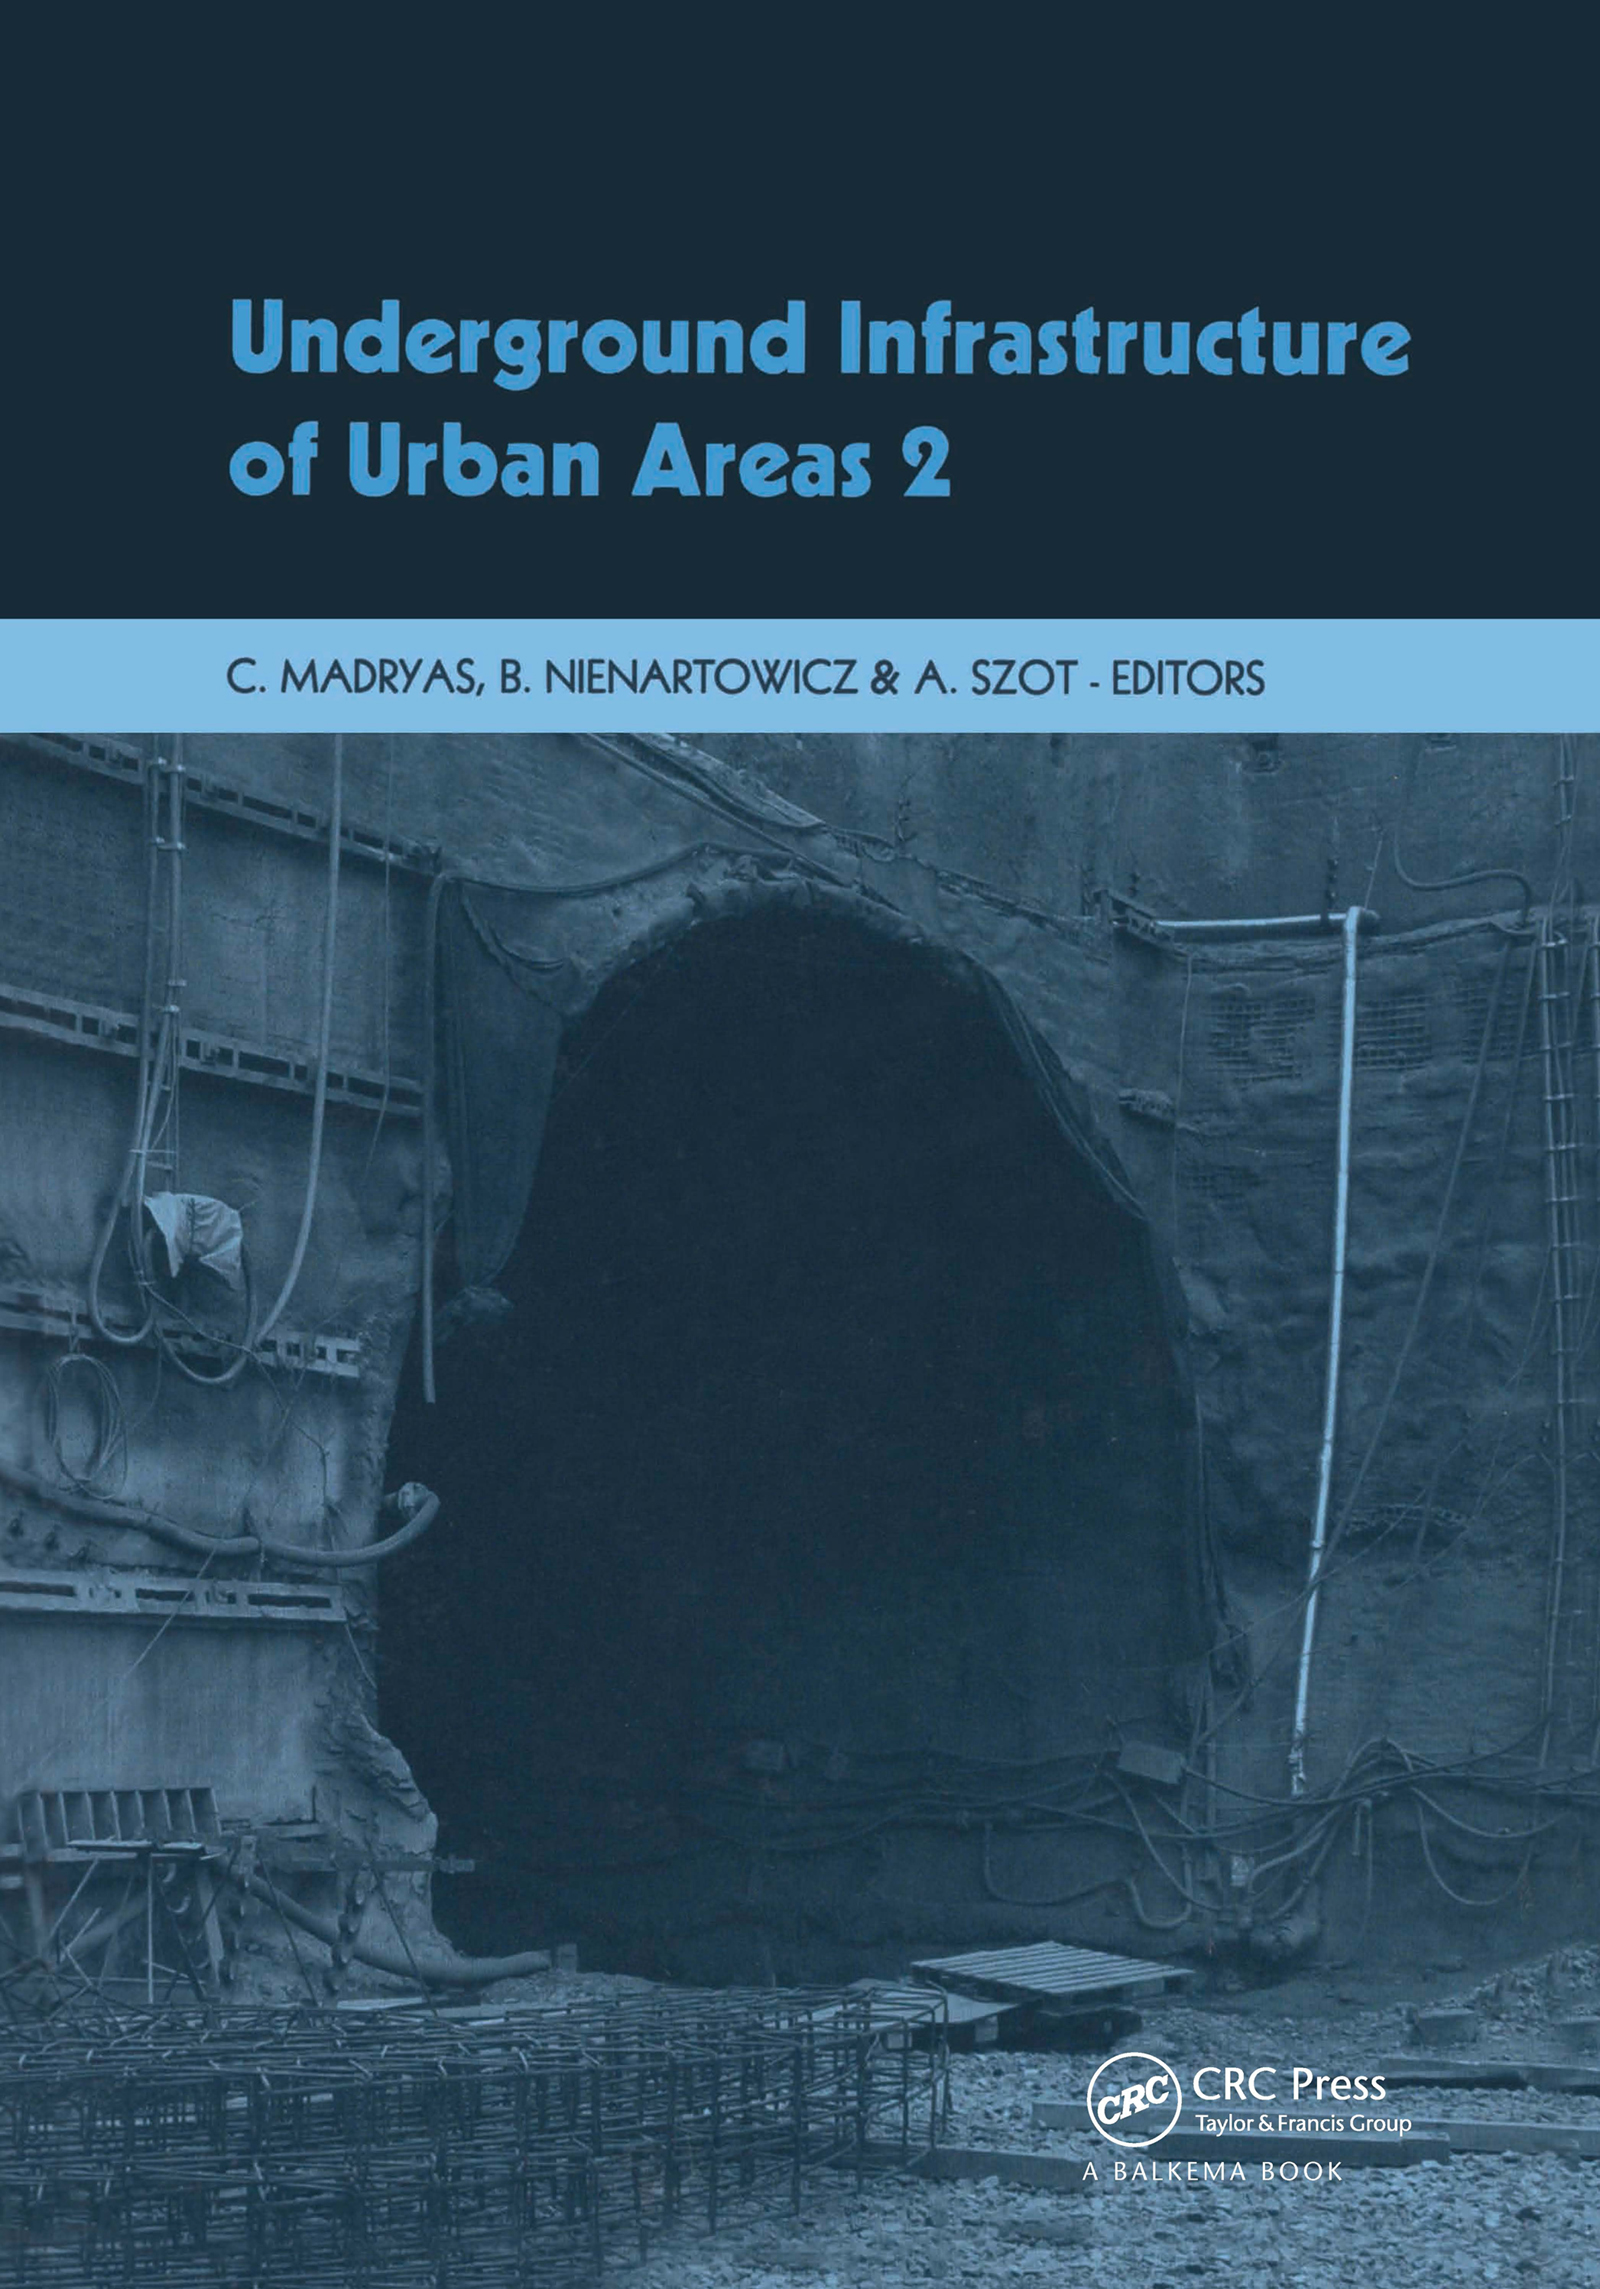 Underground Infrastructure of Urban Areas 2 (Pack - Book and CD) book cover